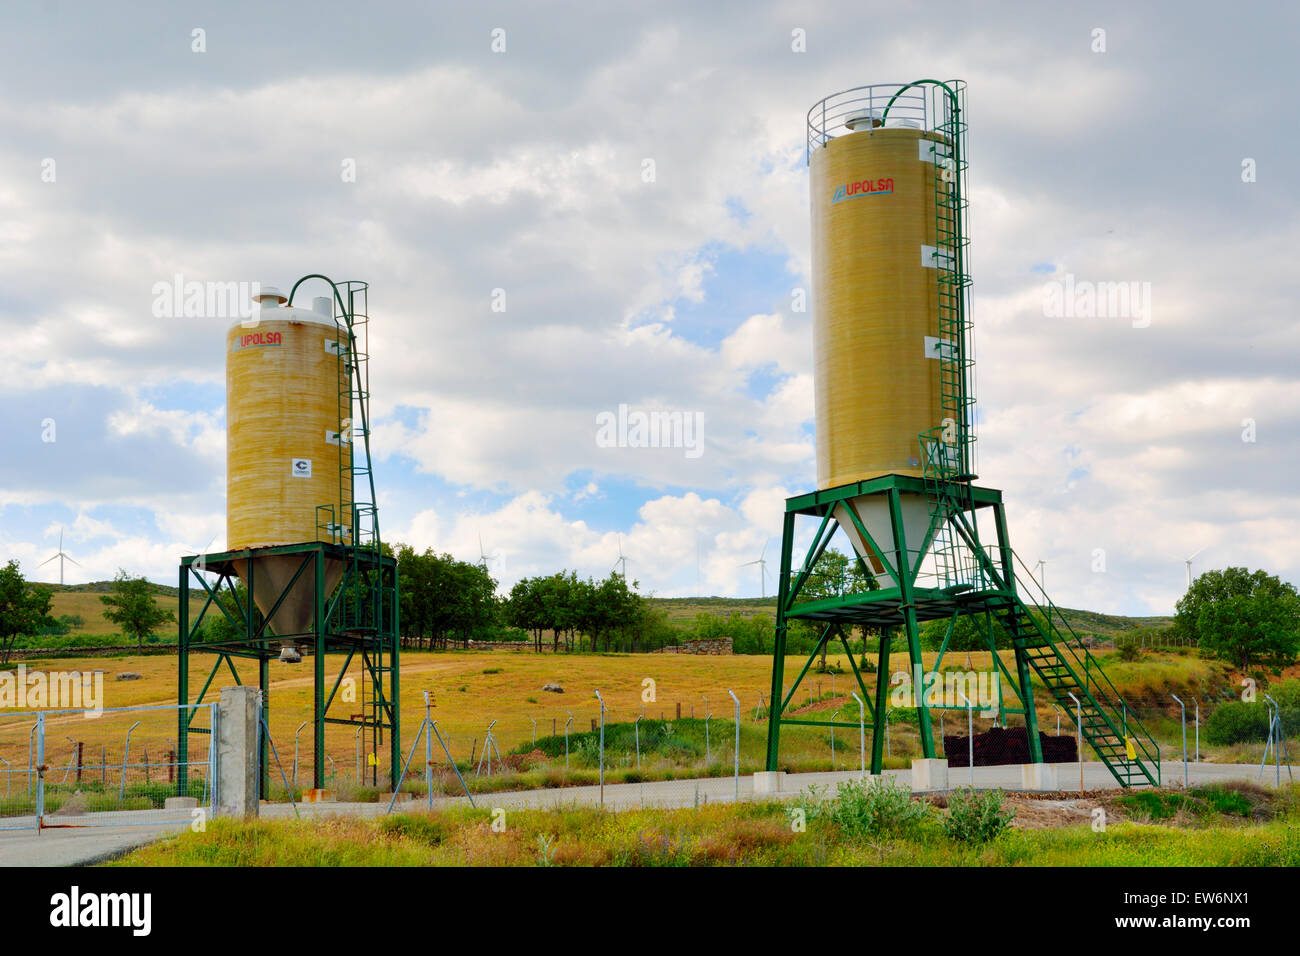 Small grain silos for local storage of livestock feed